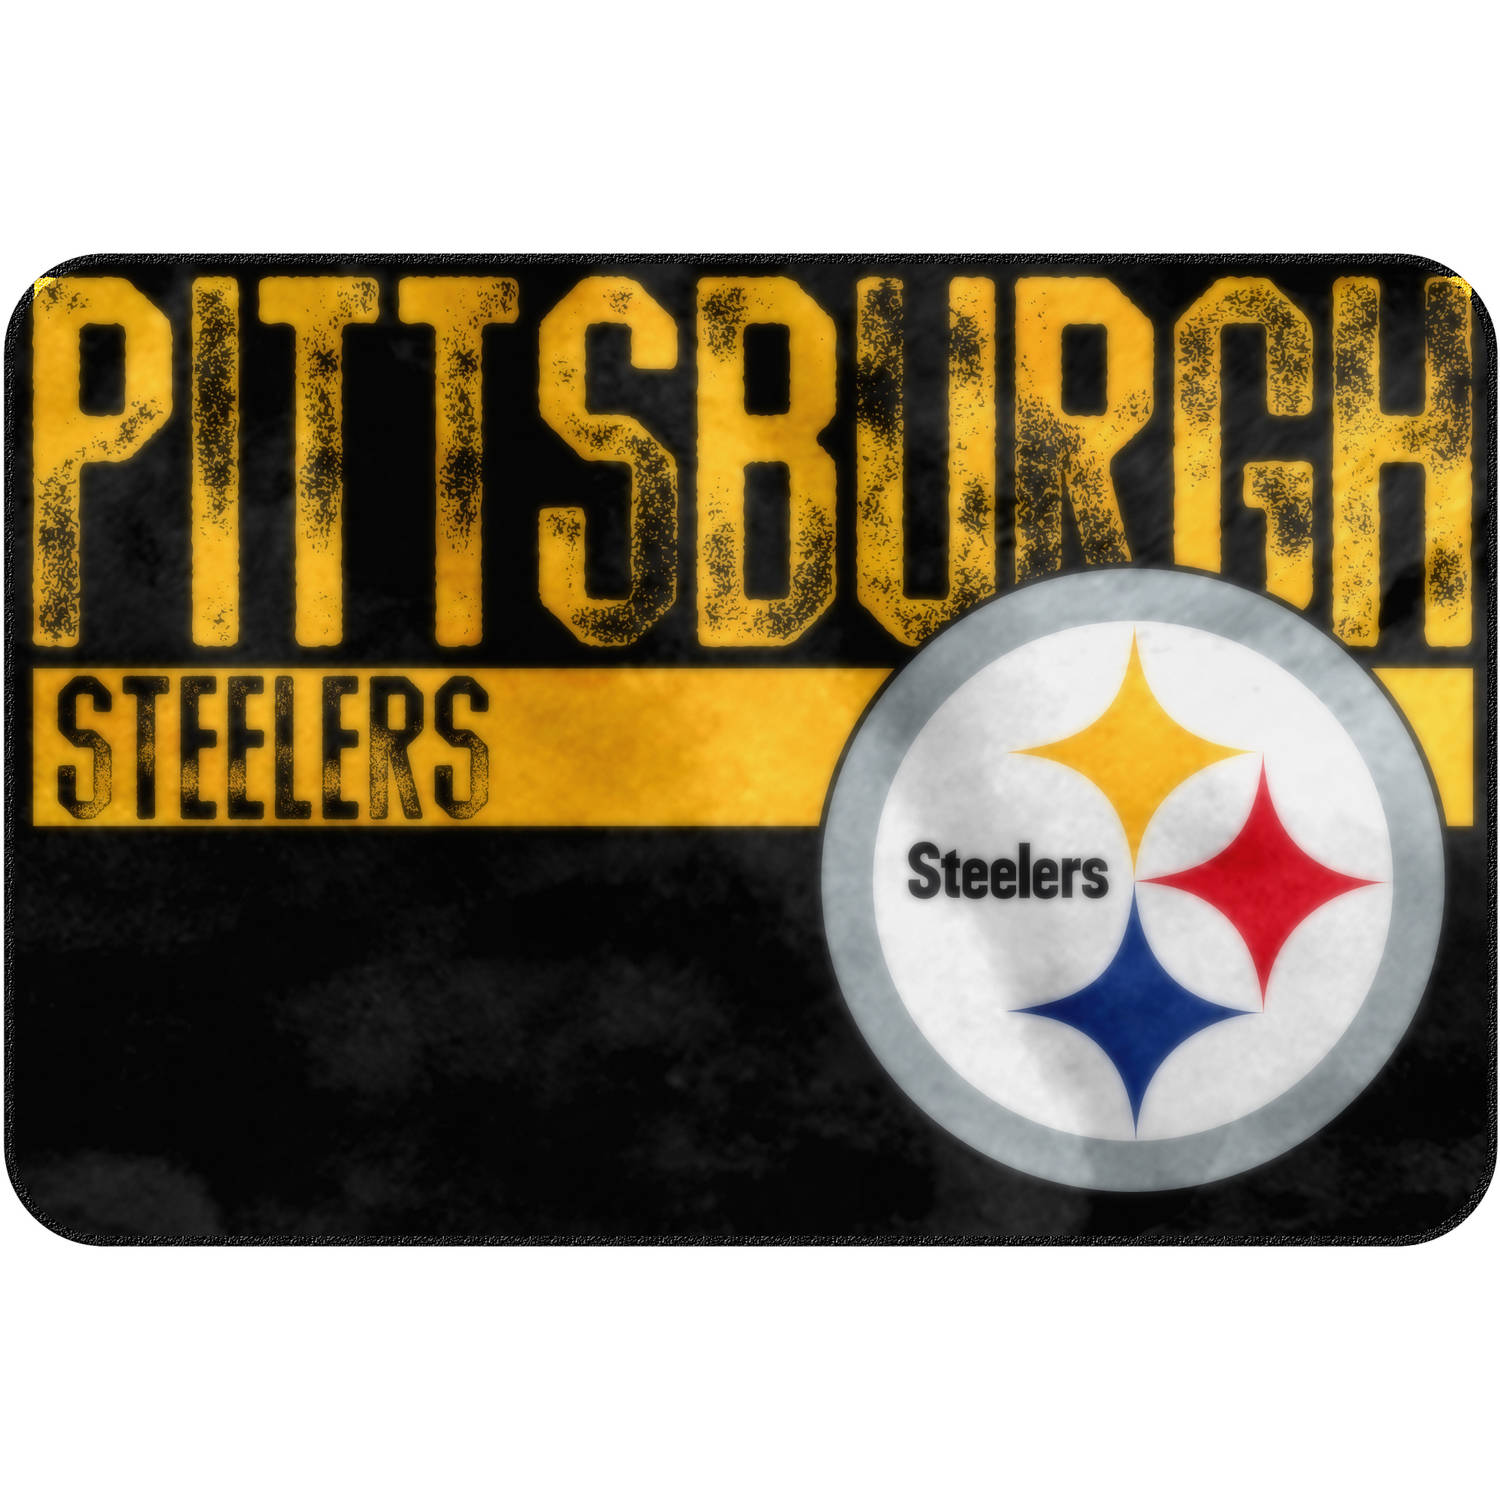 Nfl Pittsburgh Steelers Worn Out Mat